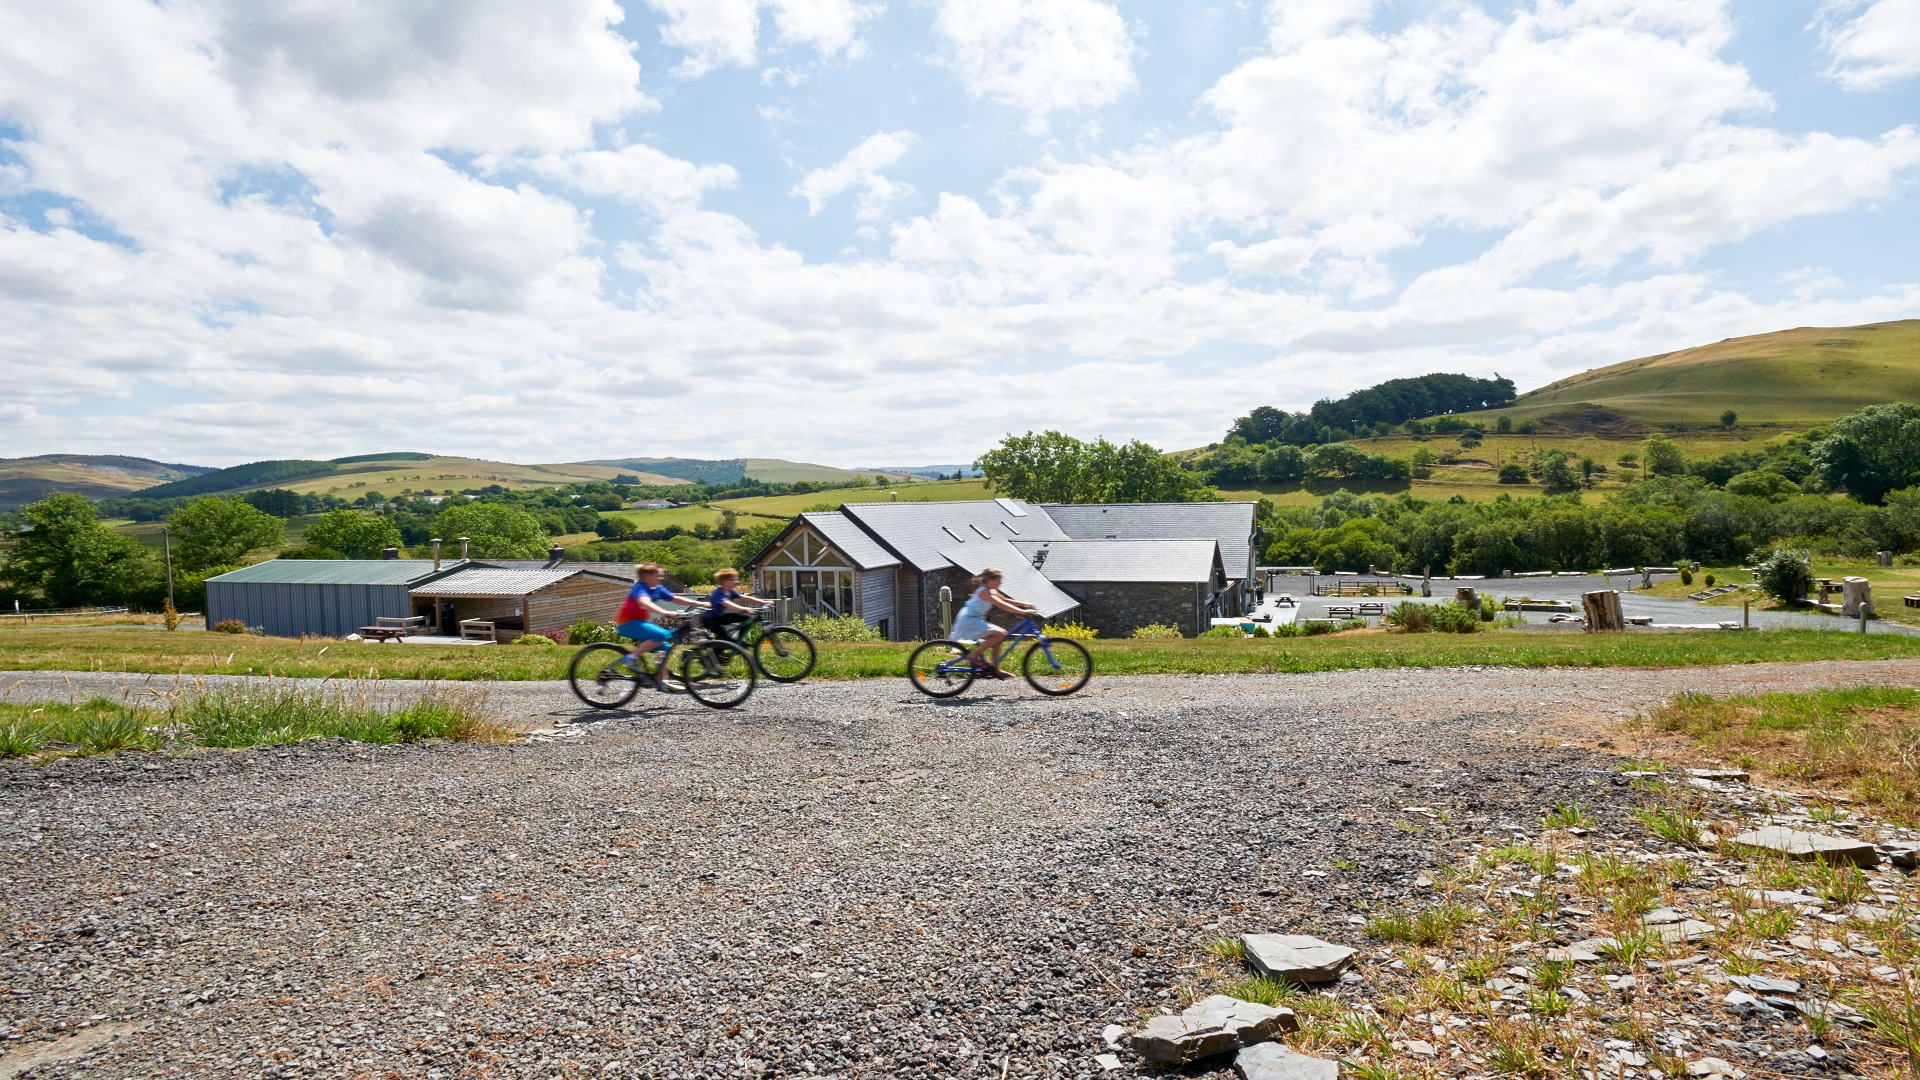 places to stay in wales, things to do in mid wales,  self catering mid wales